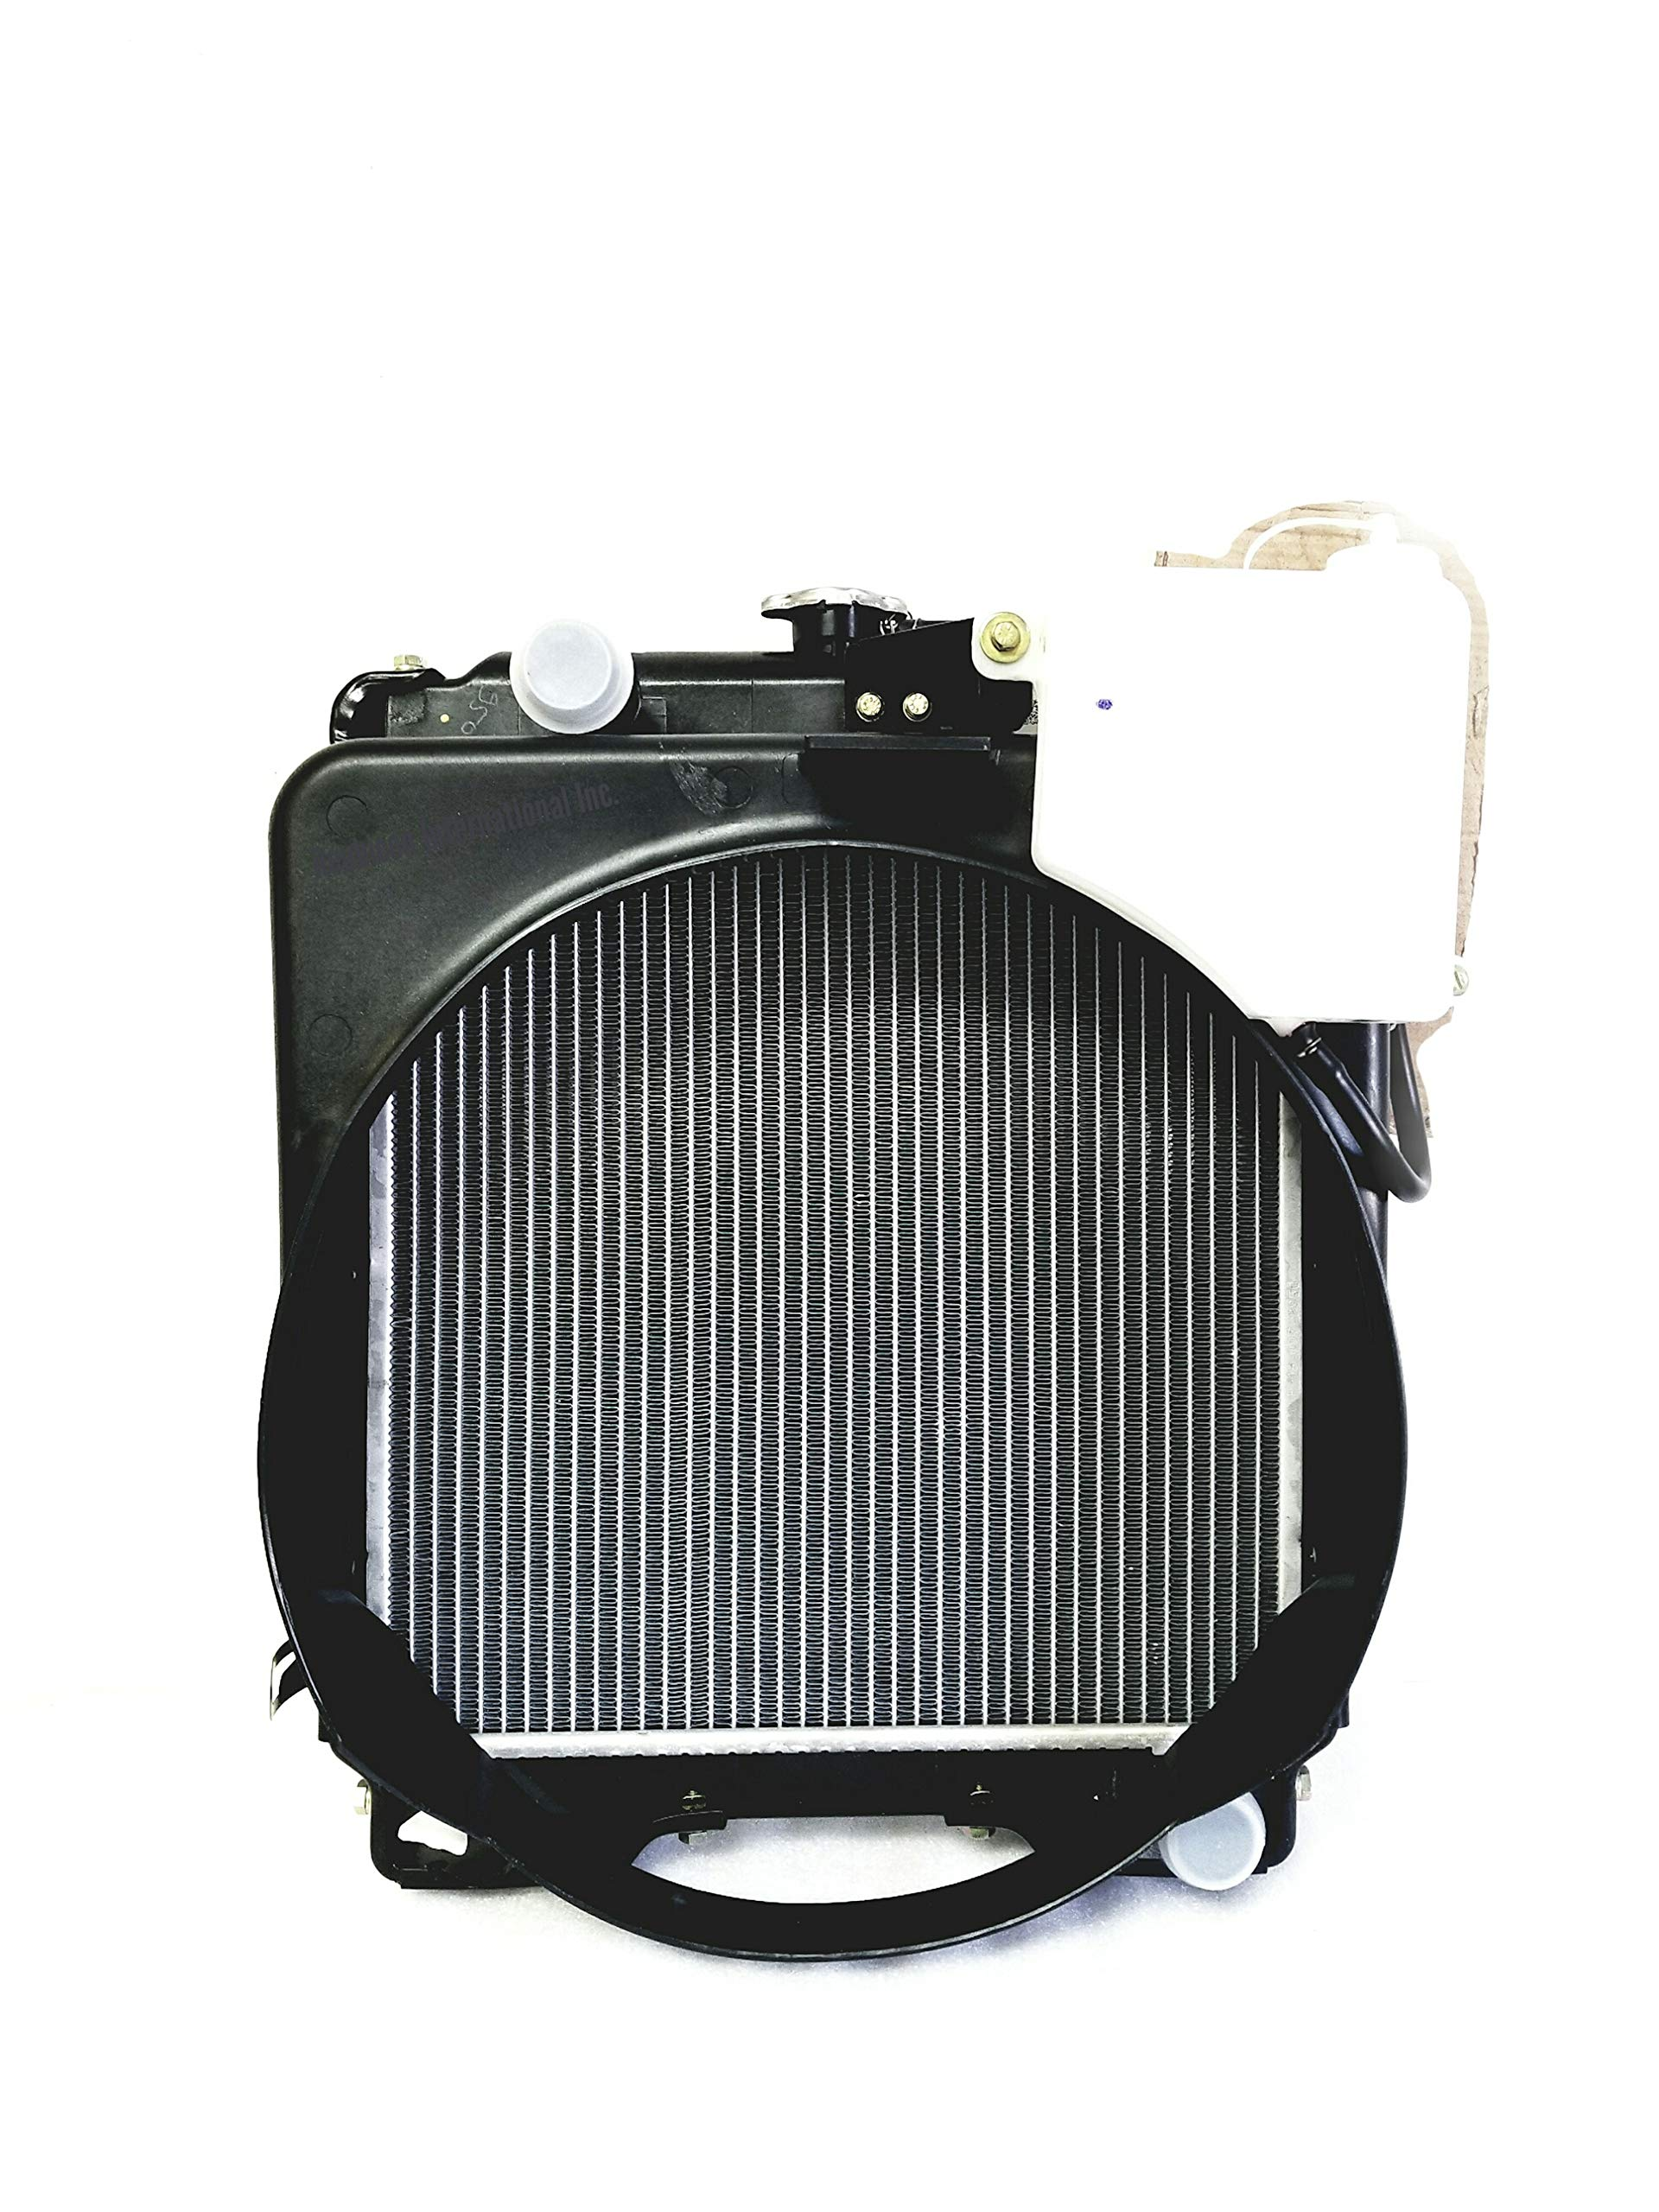 Radiator with Cowl,Reservoir Mahindra C27 C35 350 450 E40 475 E350 3505 3325 3525 C4005 5005 005550175R91 005555723R9 006000275R91 by Replacement for Mahindra Tractor